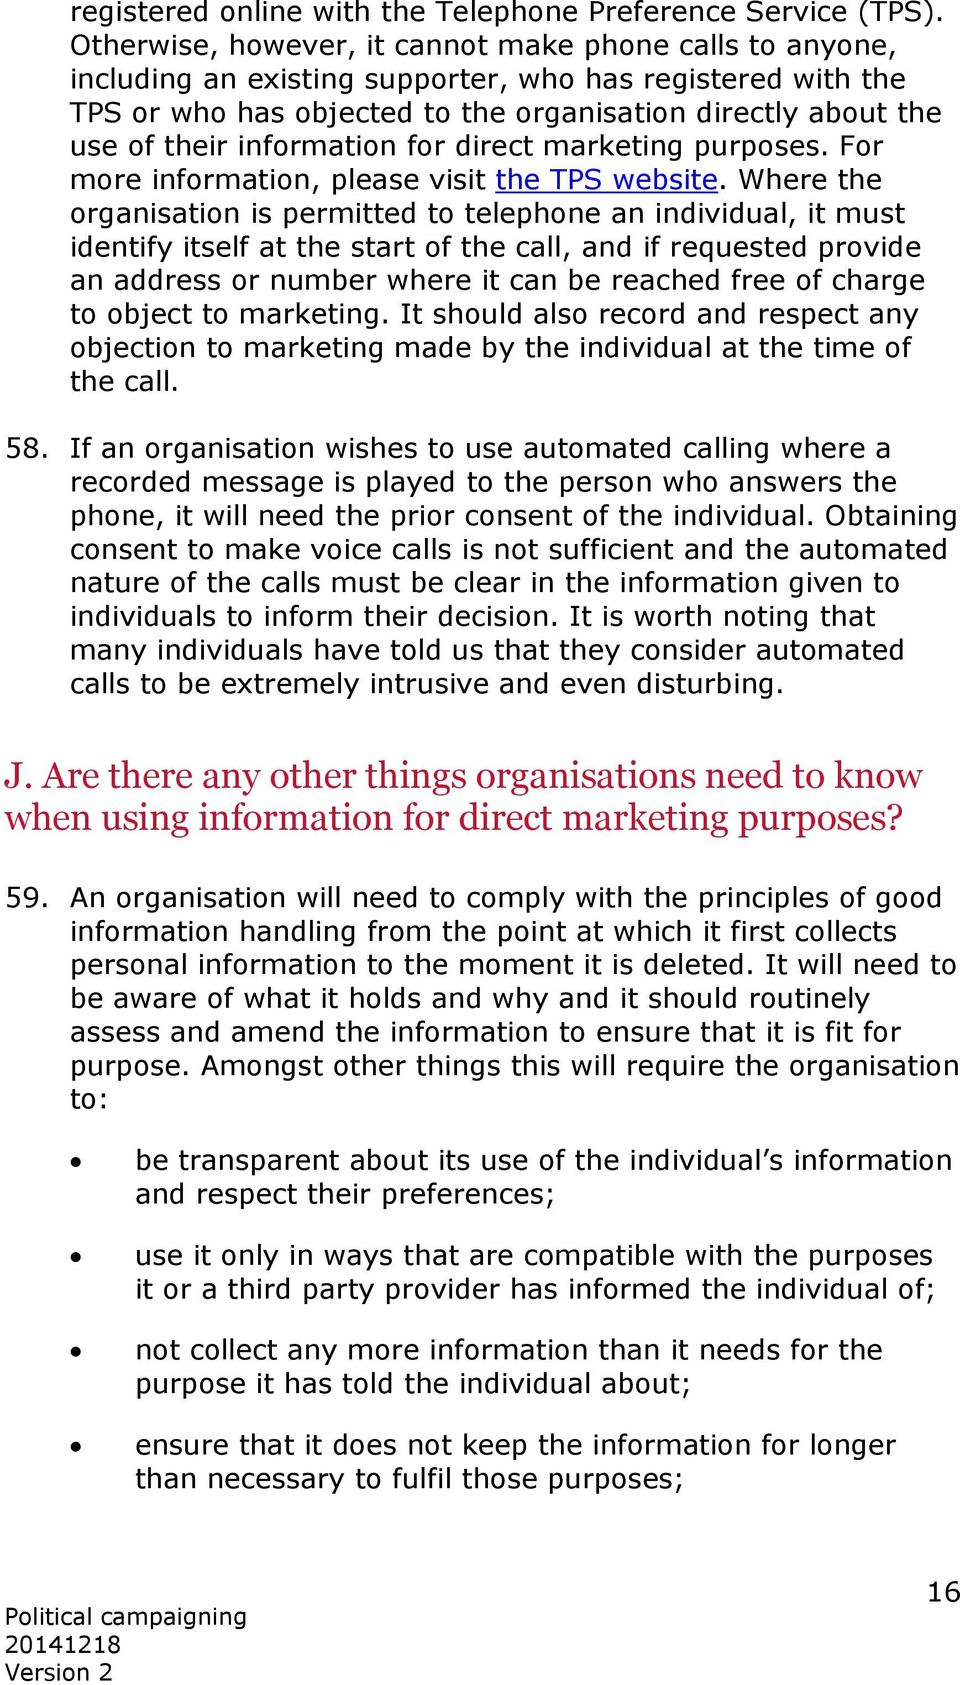 information for direct marketing purposes. For more information, please visit the TPS website.